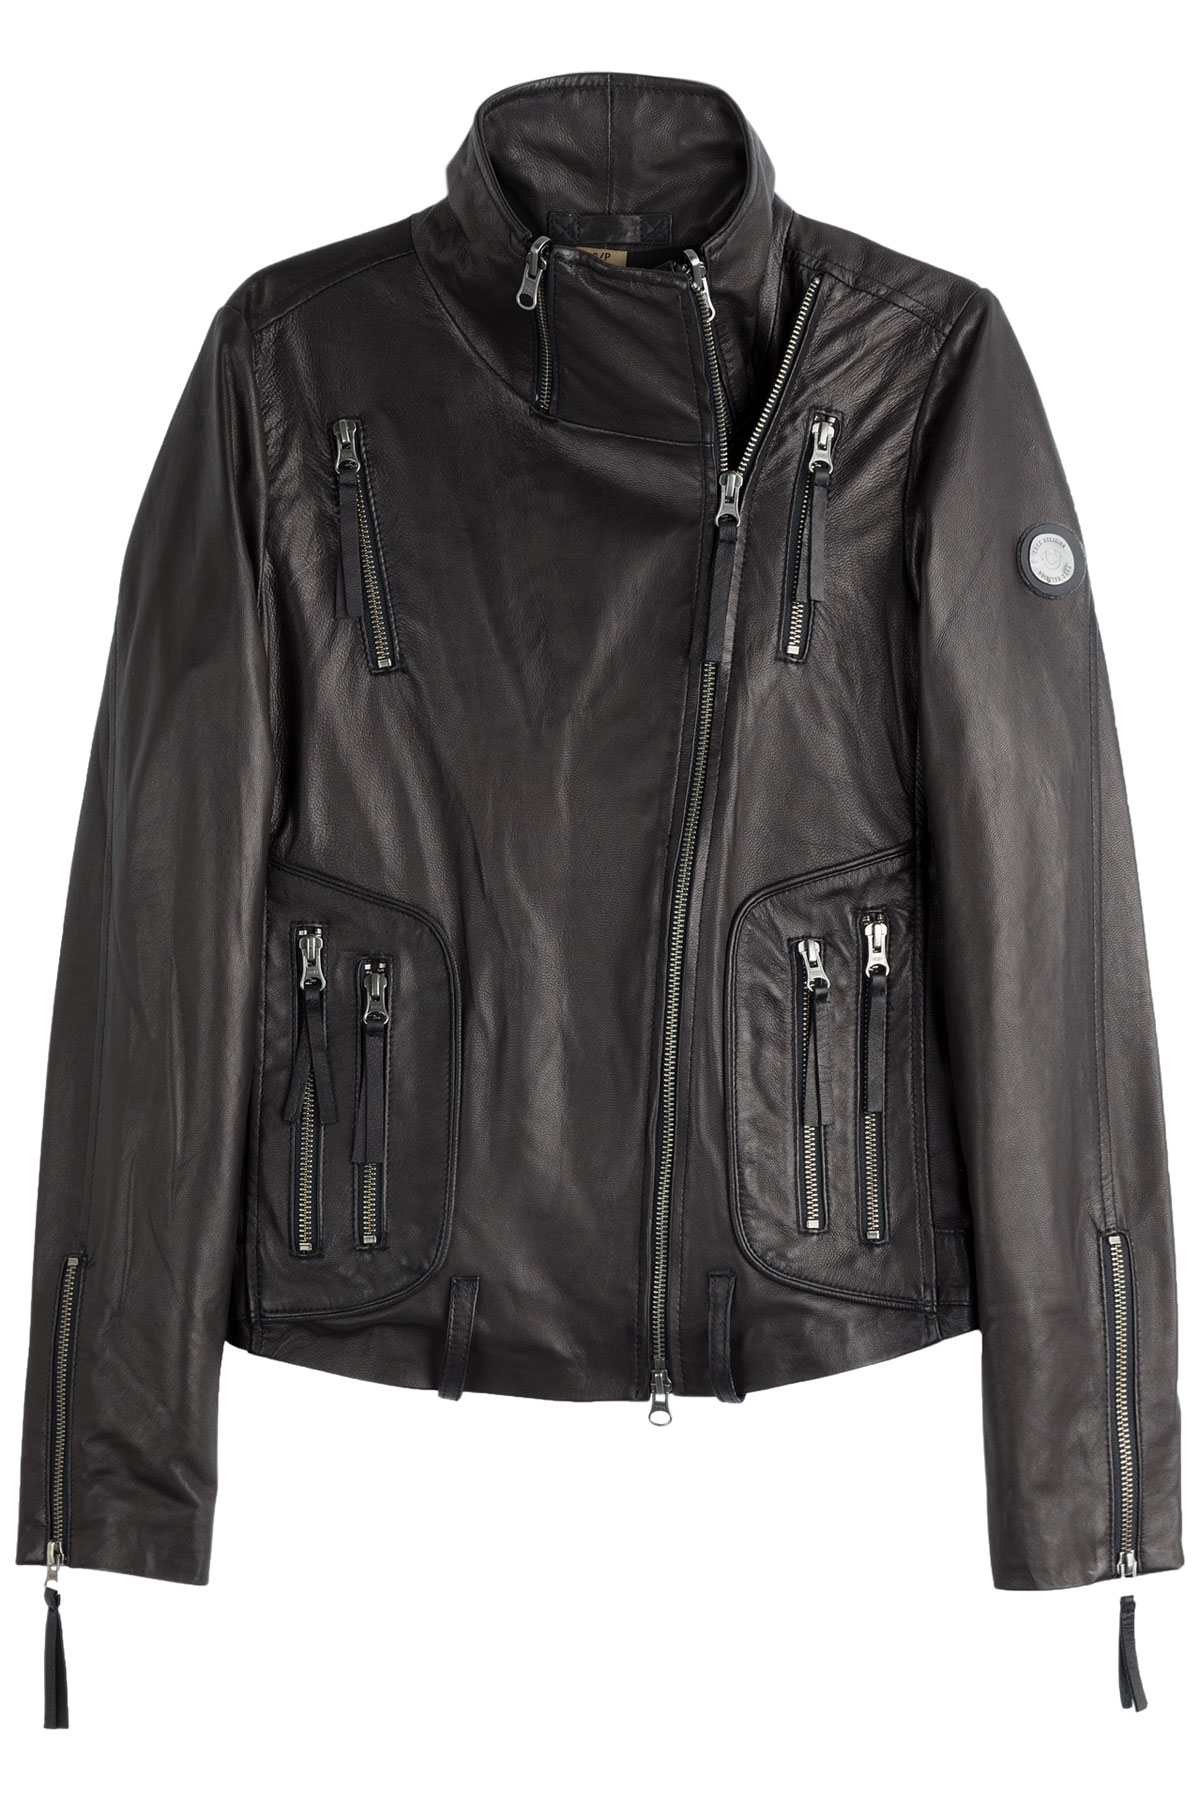 true religion leather biker jacket black in black lyst. Black Bedroom Furniture Sets. Home Design Ideas